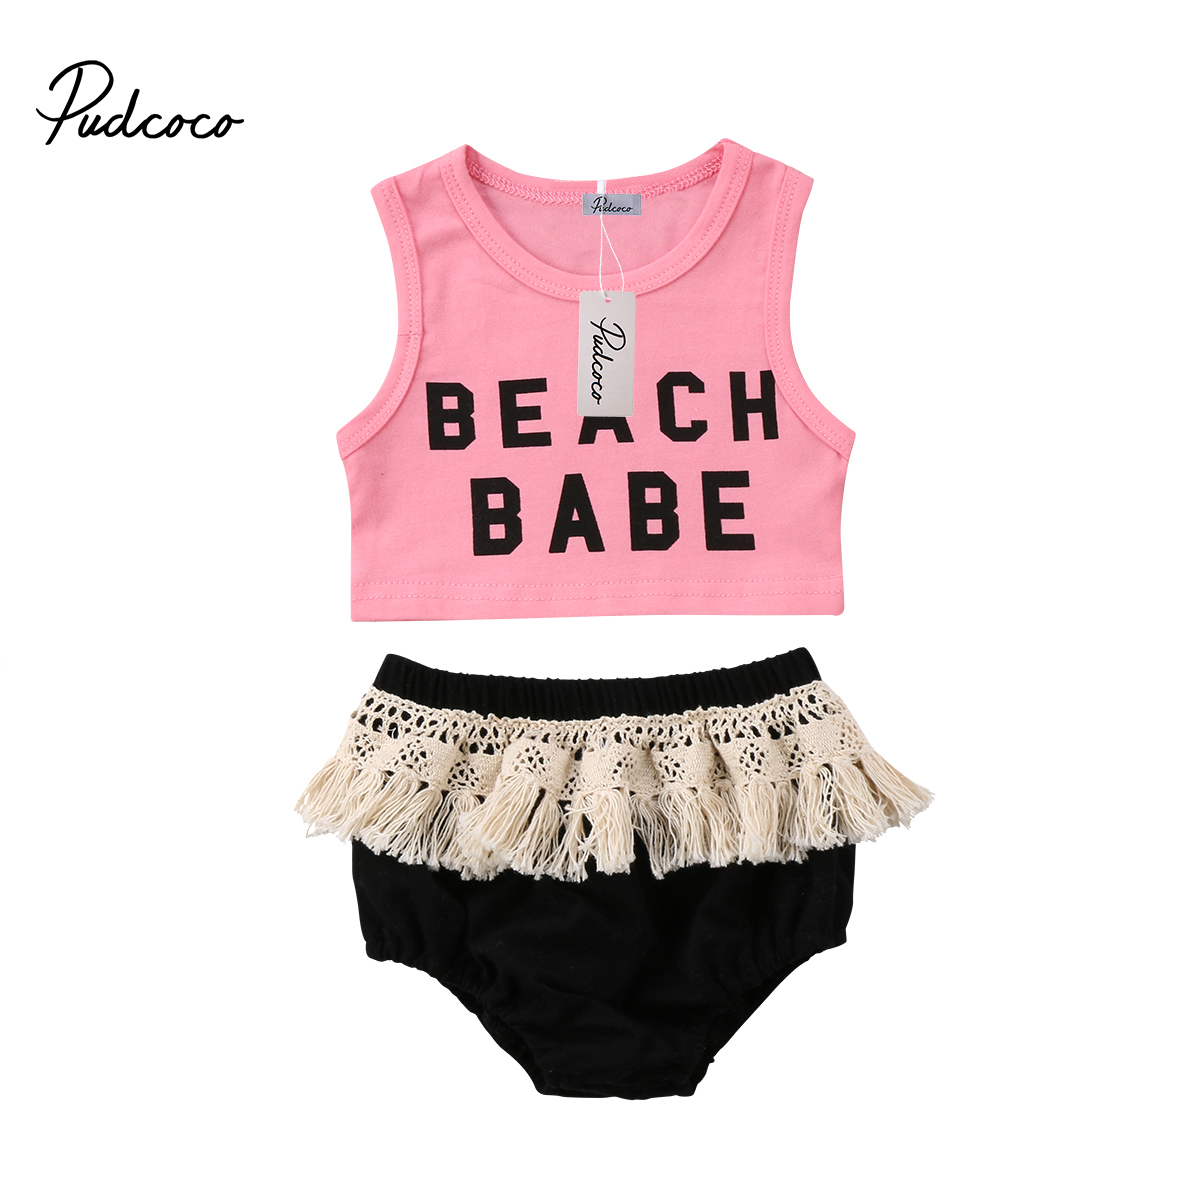 2Pcs Newborn Outfits Summer Cute Kids Baby Girls Crop Top Letter T-shirt Infant Baby Girl Tassels Shorts Clothes Set summer 2017 leopard baby girl clothes newborn infant baby girls romper bodysuit headband 2pcs outfits toddler kids clothing set